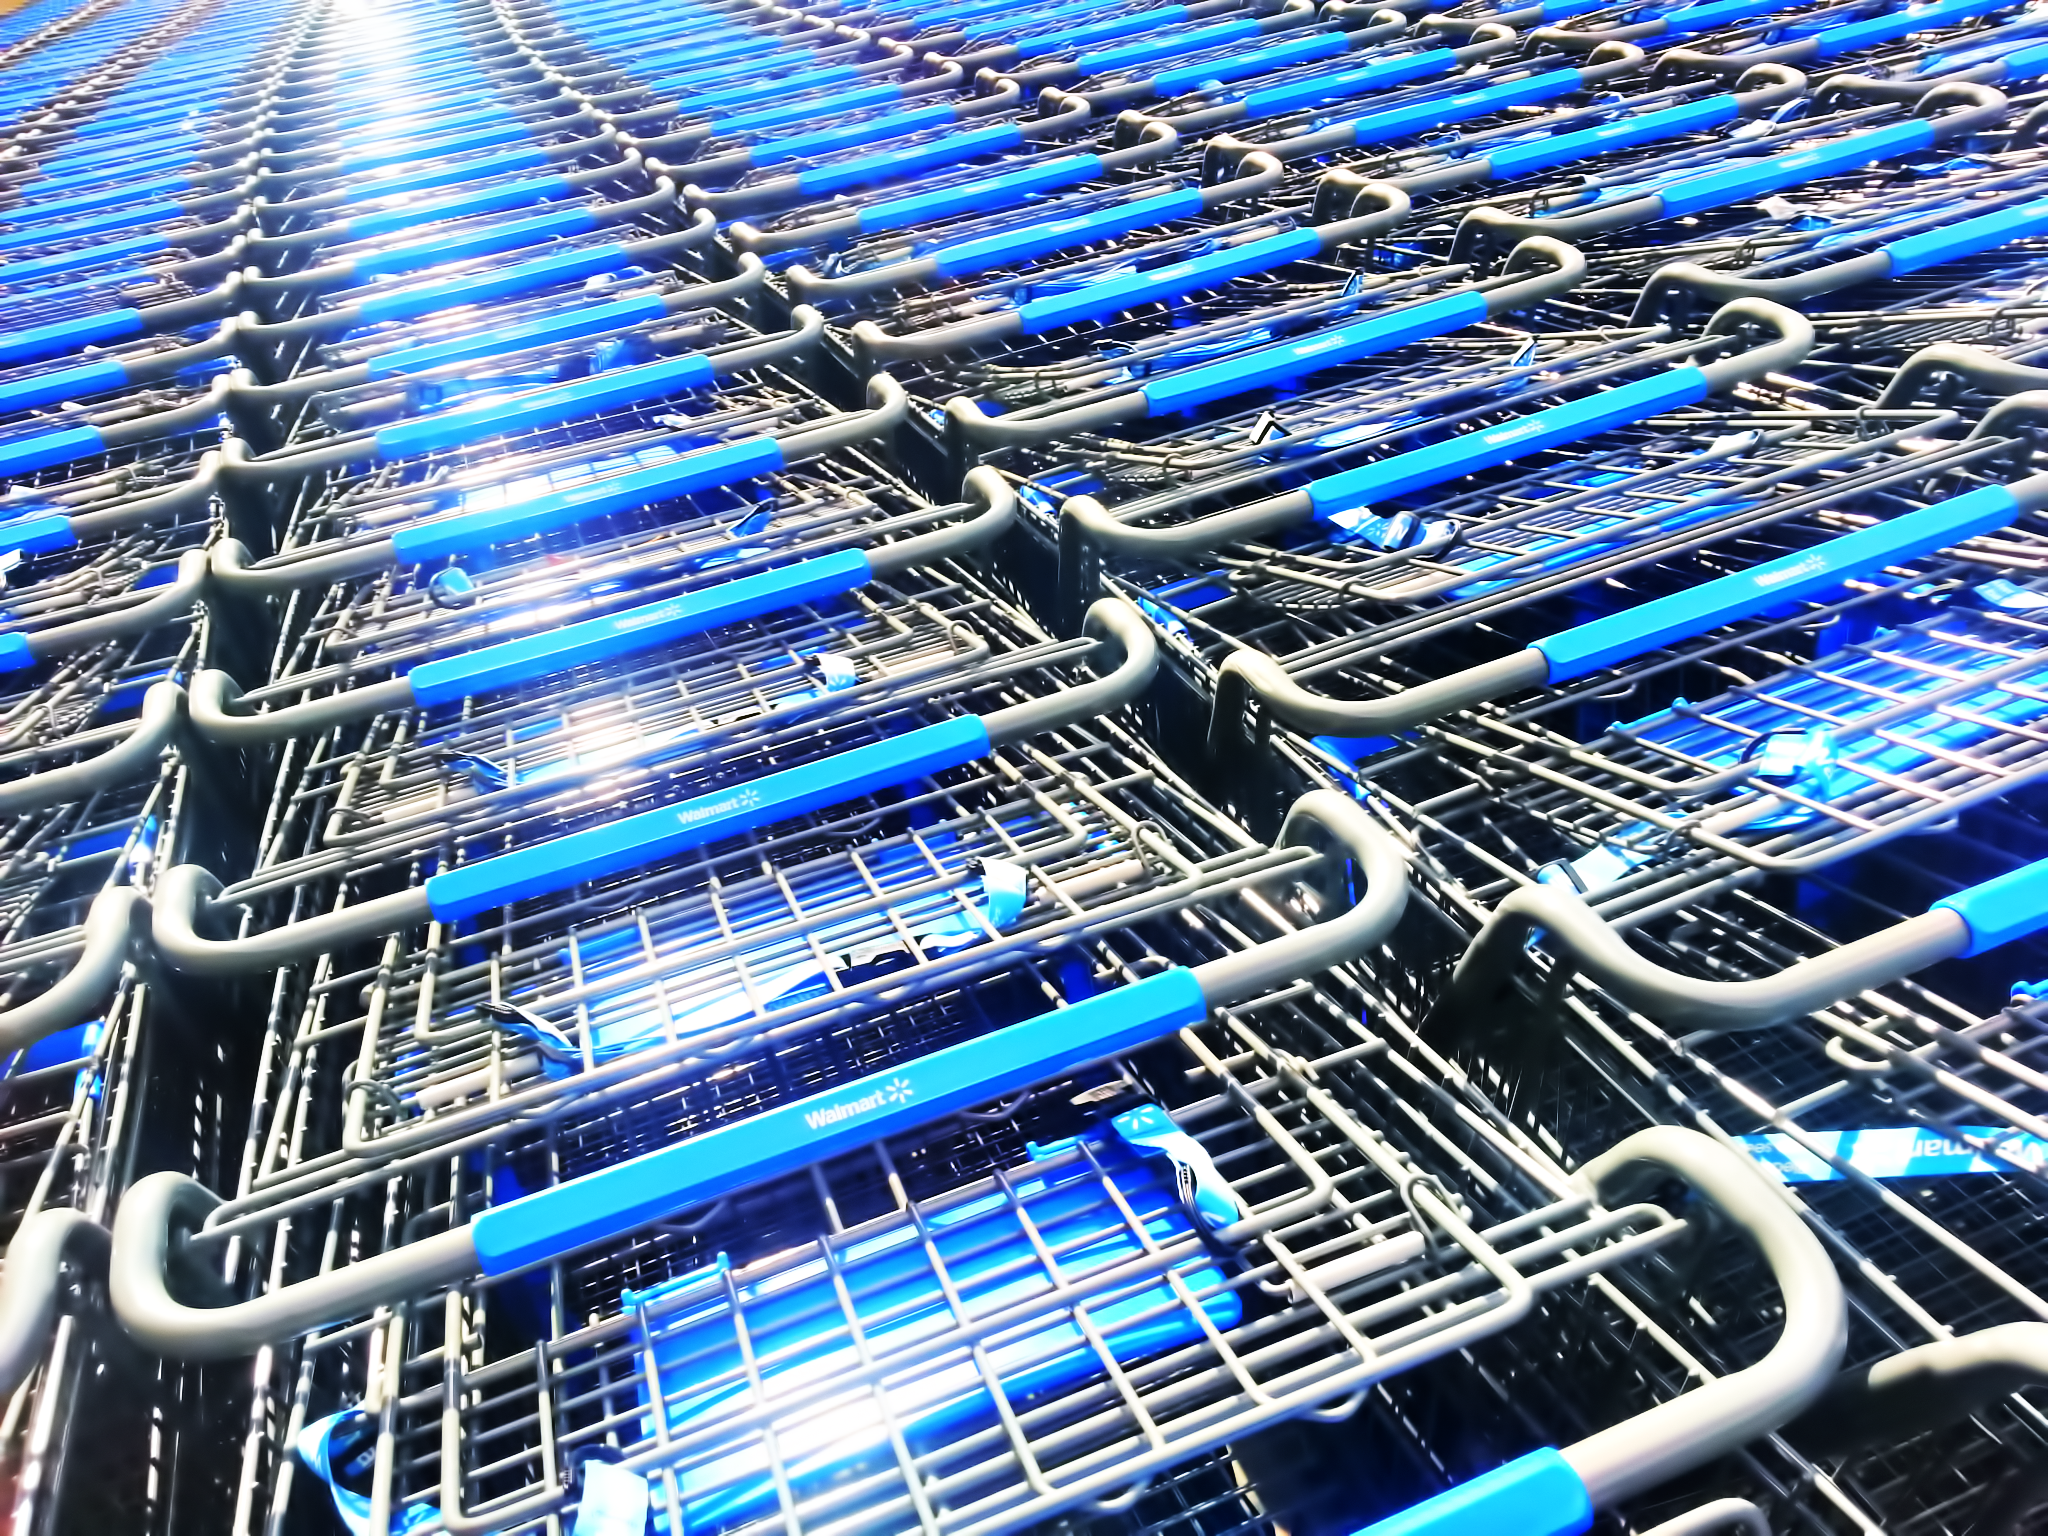 Walmart S Robotic Shopping Carts Are The Latest Sign That Automation